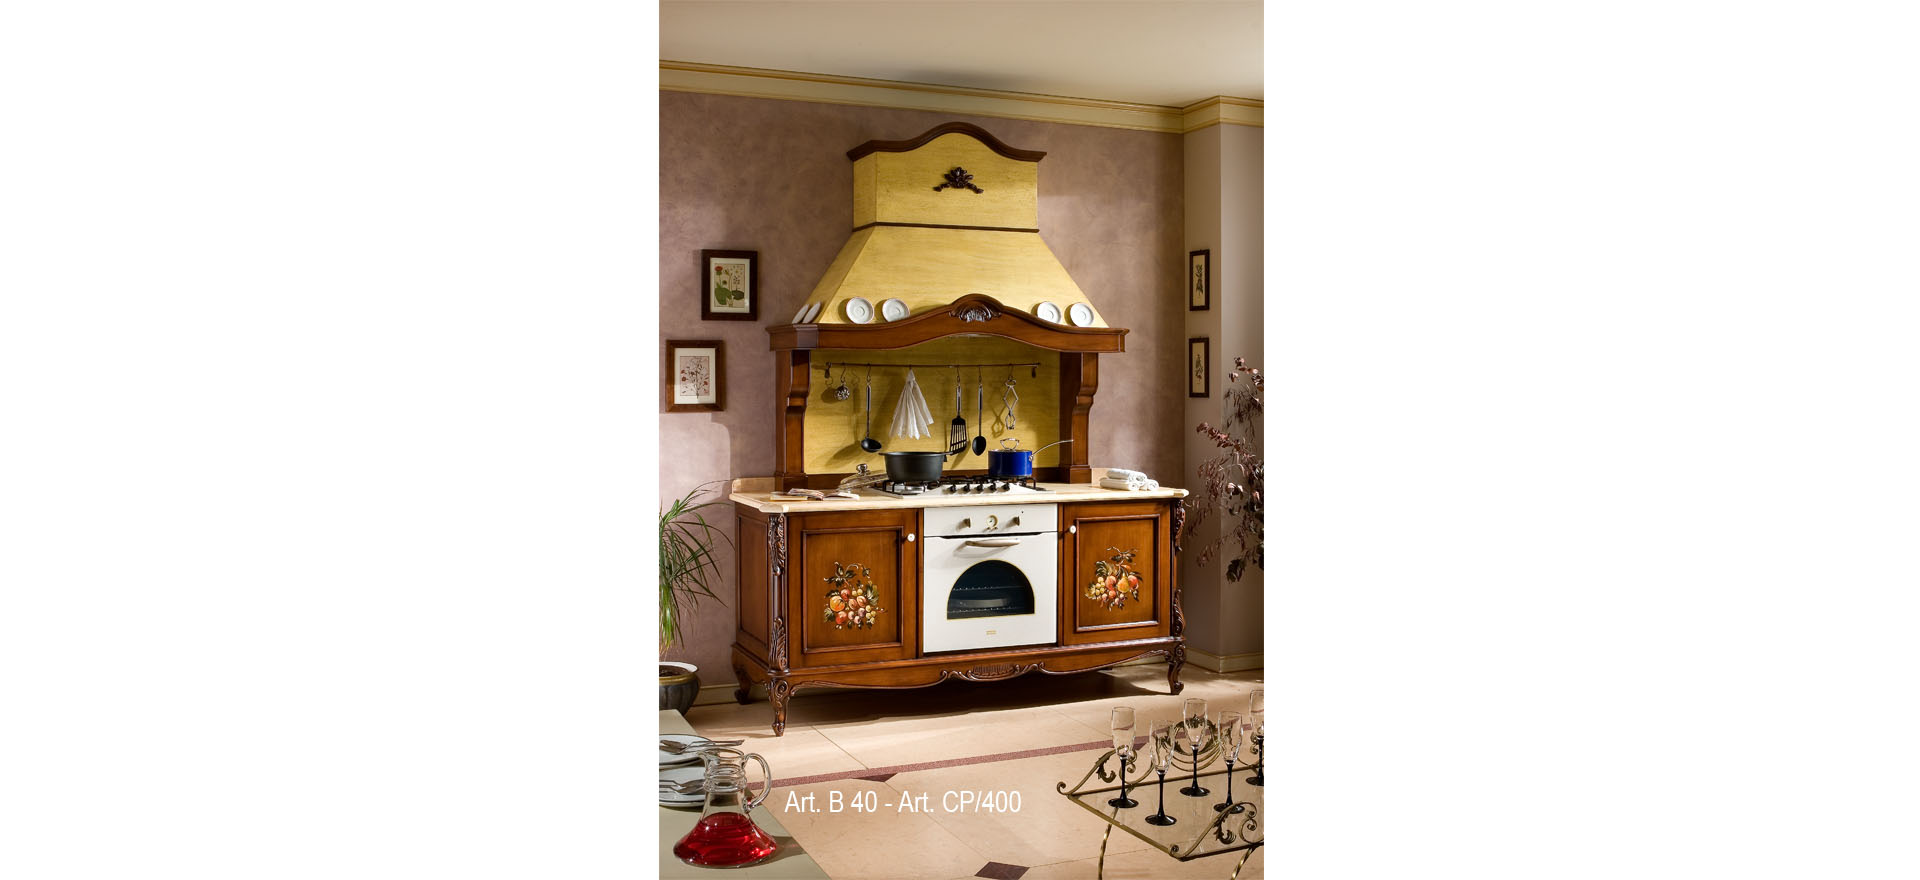 cucina decorata 5-art-